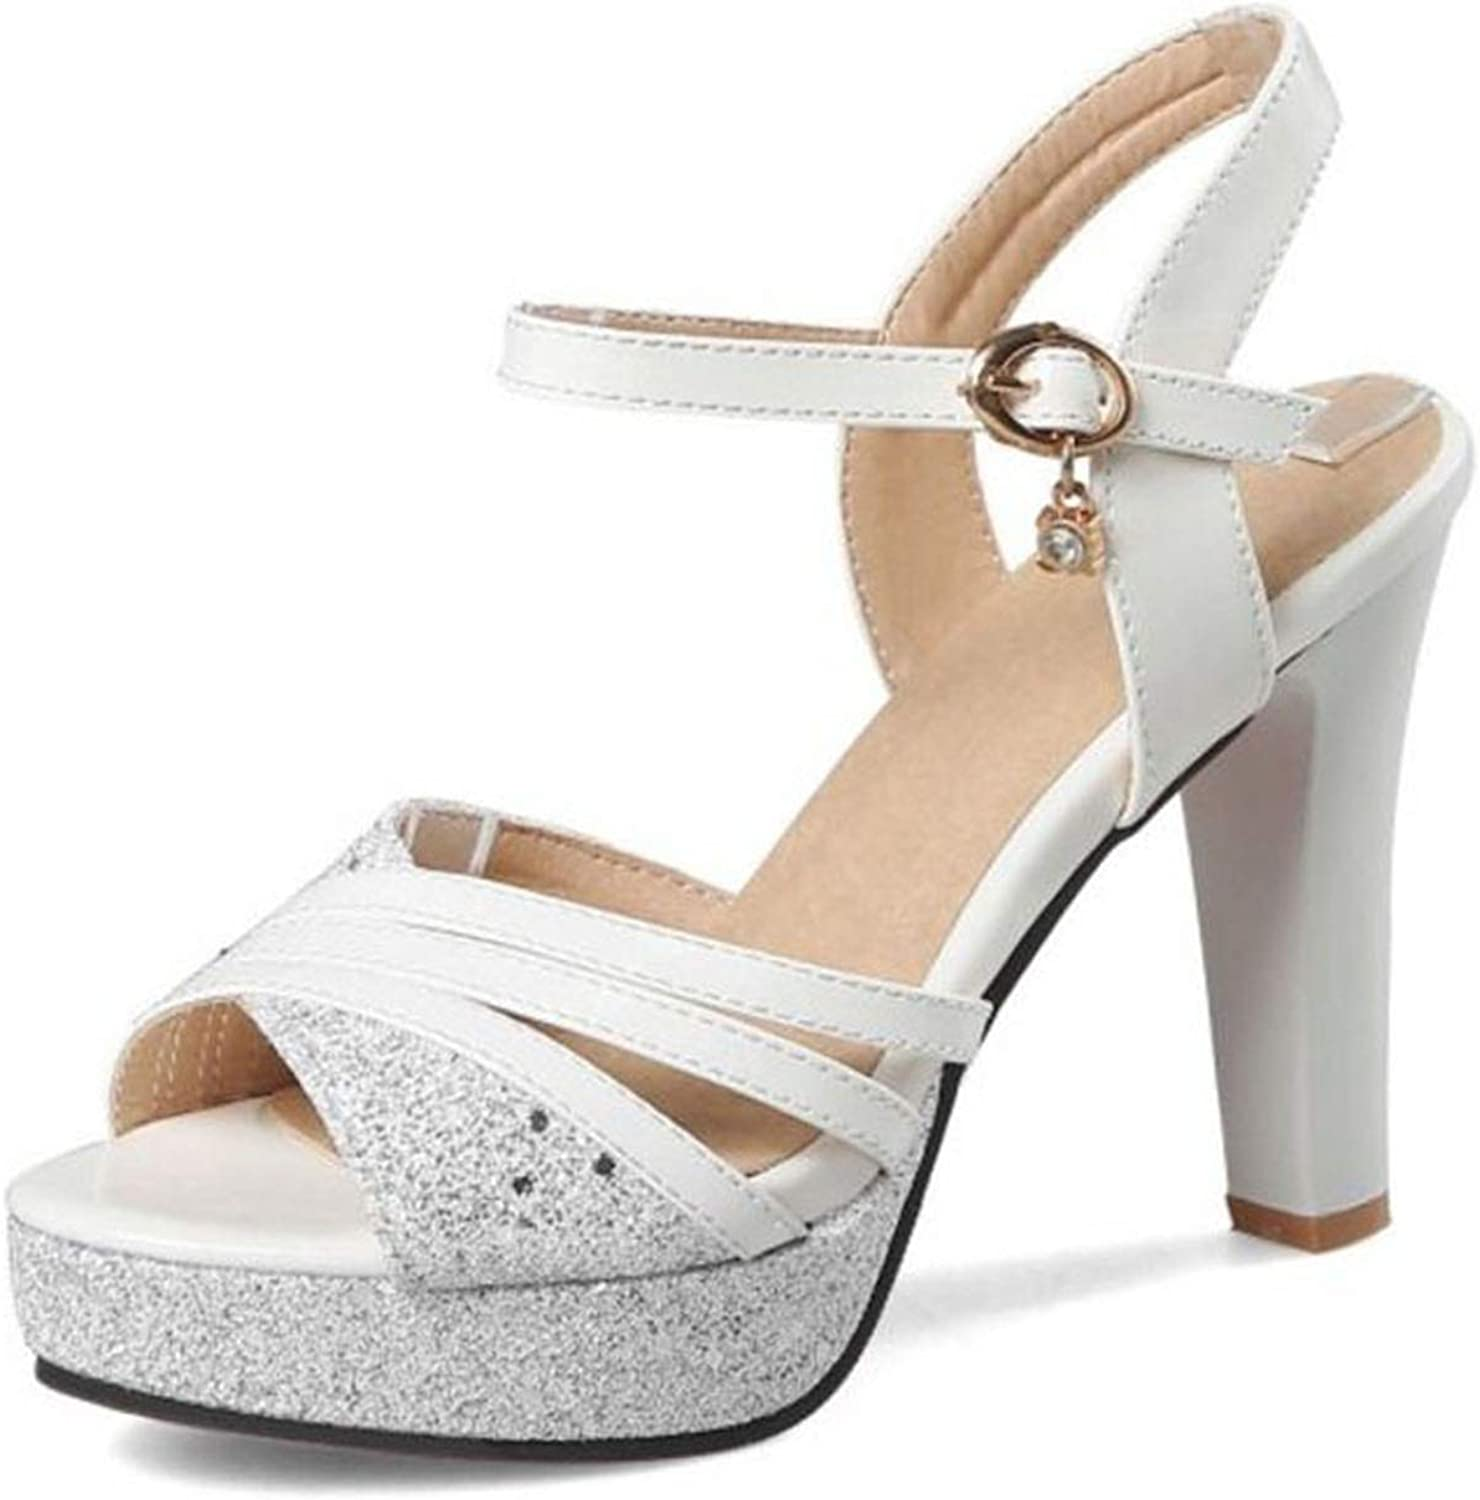 Fairly Sweet High Heels Female Thick Heel Paltform Crystal Buckle Summer shoes,White,8